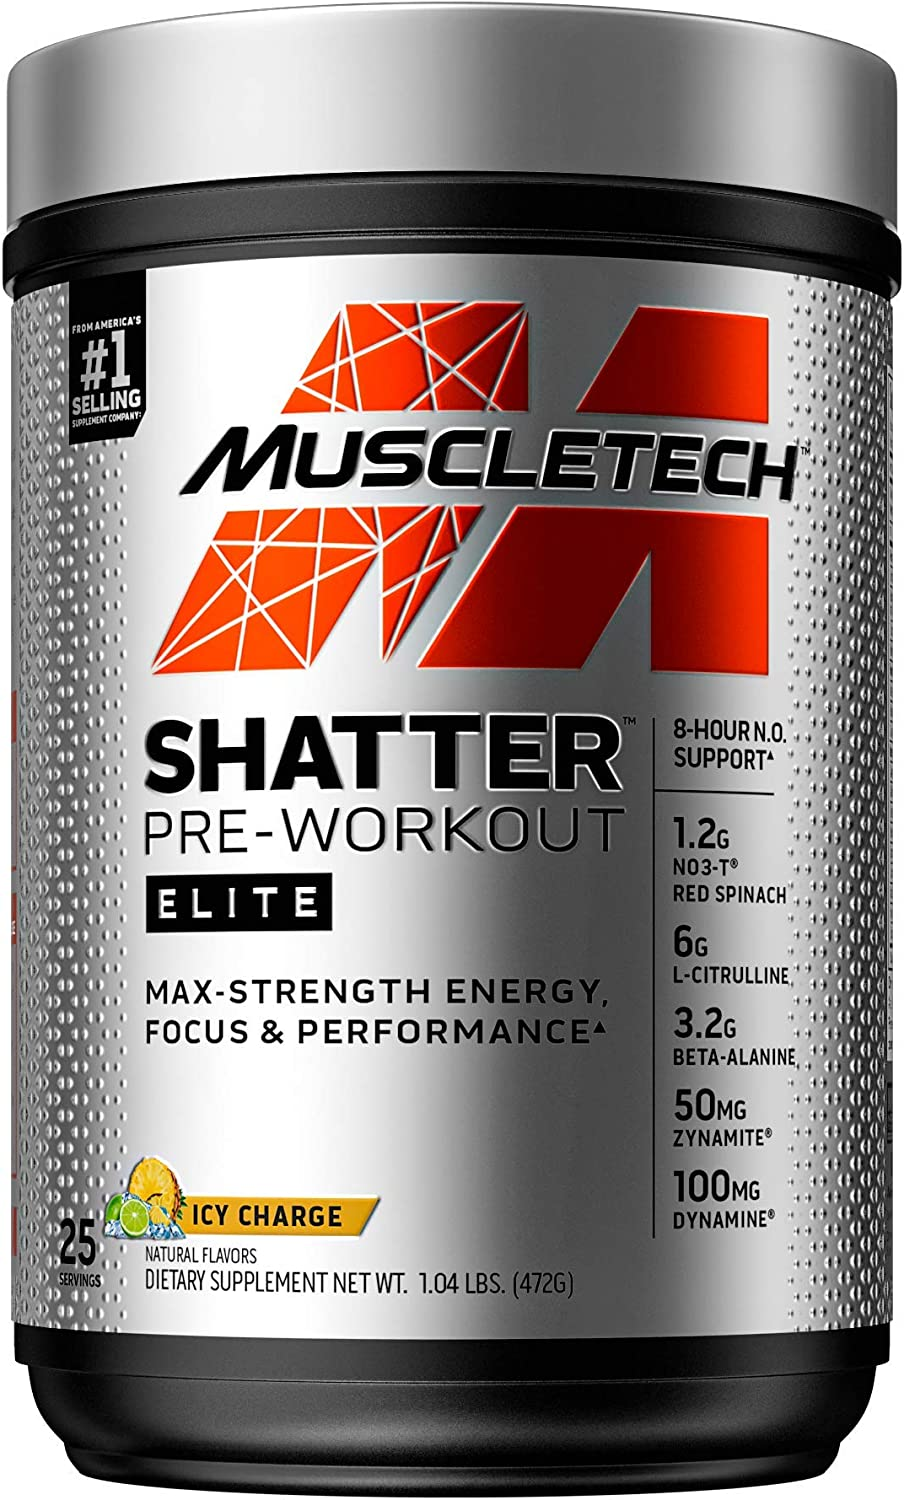 Pre Workout for Men & Women   MuscleTech Shatter Elite   Preworkout Energy Powder   Max Strength for Explosive Energy   8 Hour Nitric Oxide Booster   ICY Charge, 1 lb (25 Servings)